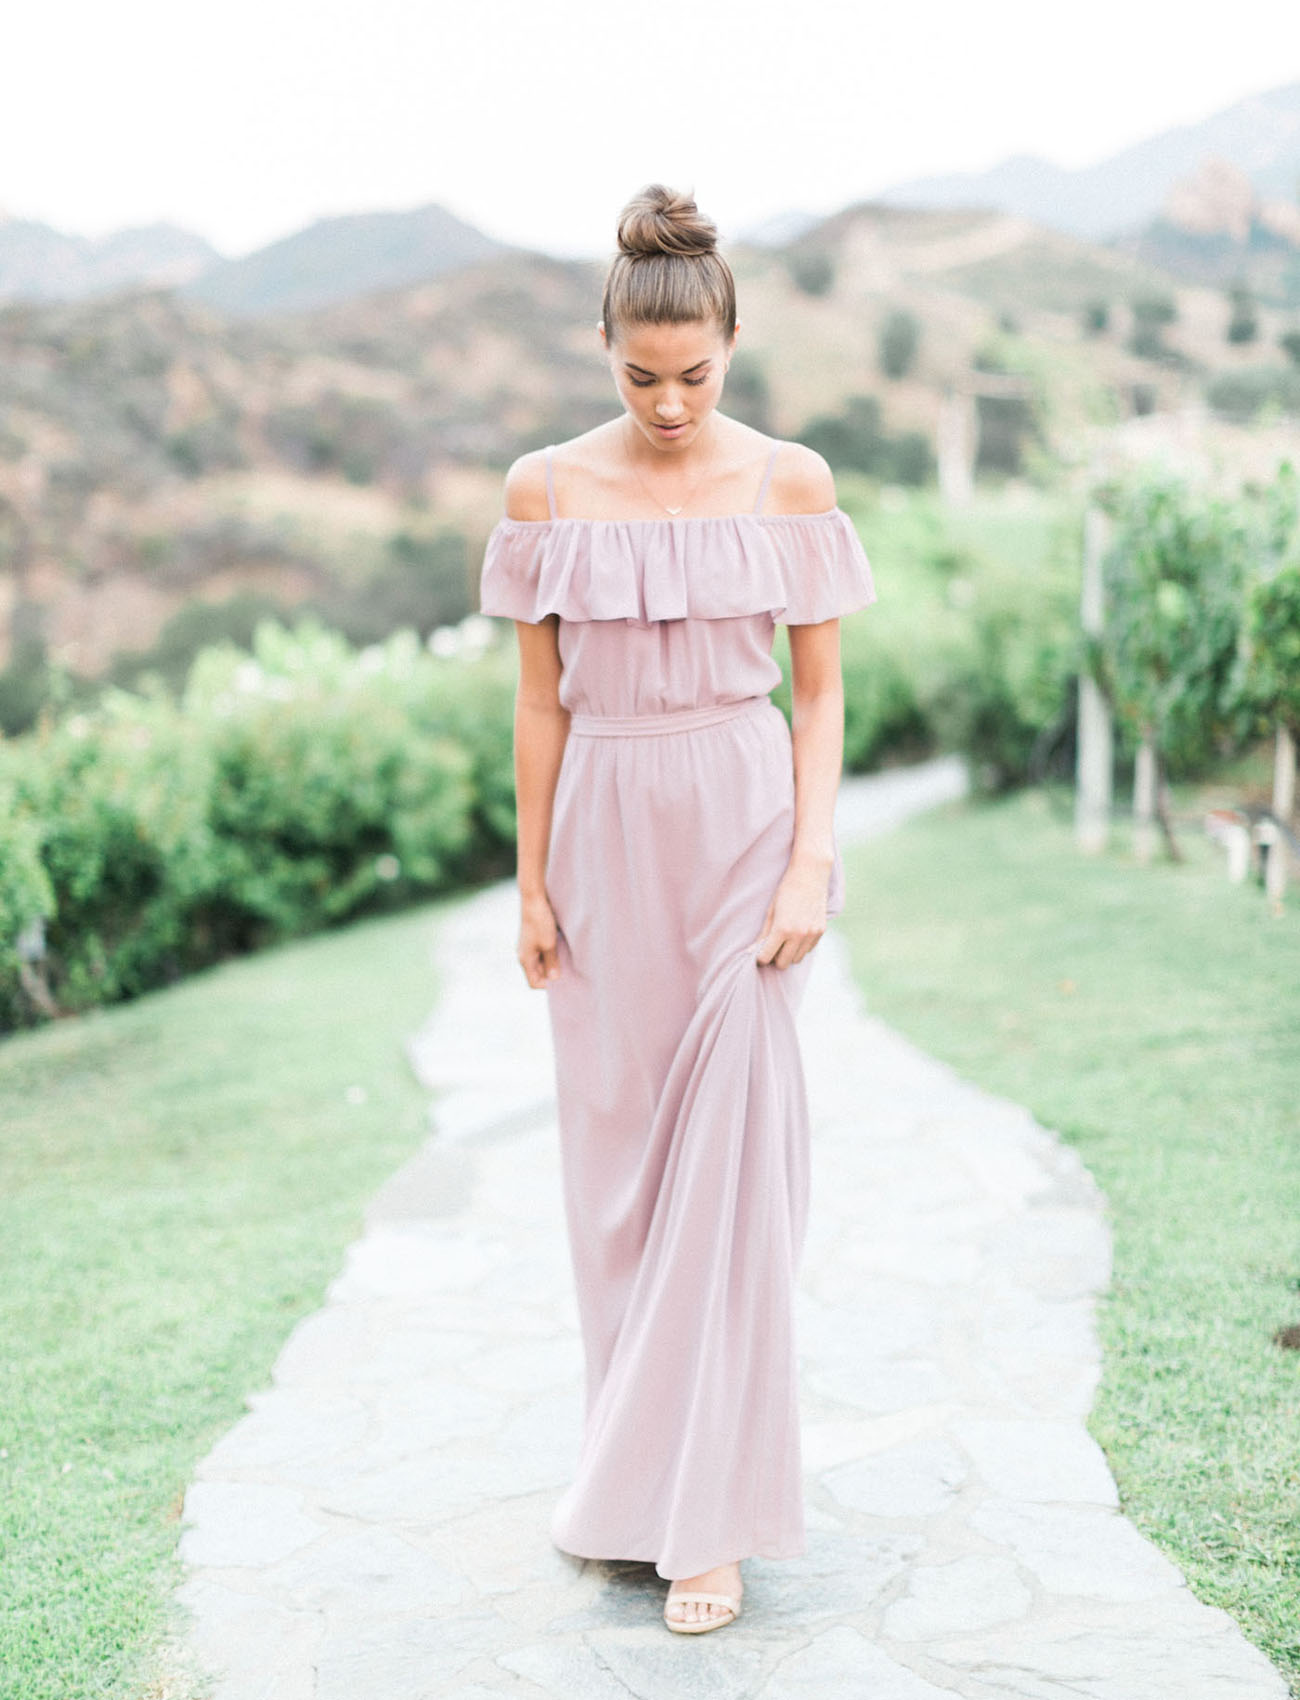 U201cThe New Romanticu201d Bridesmaid Dresses by Joanna August | Green Wedding Shoes | Weddings Fashion ...